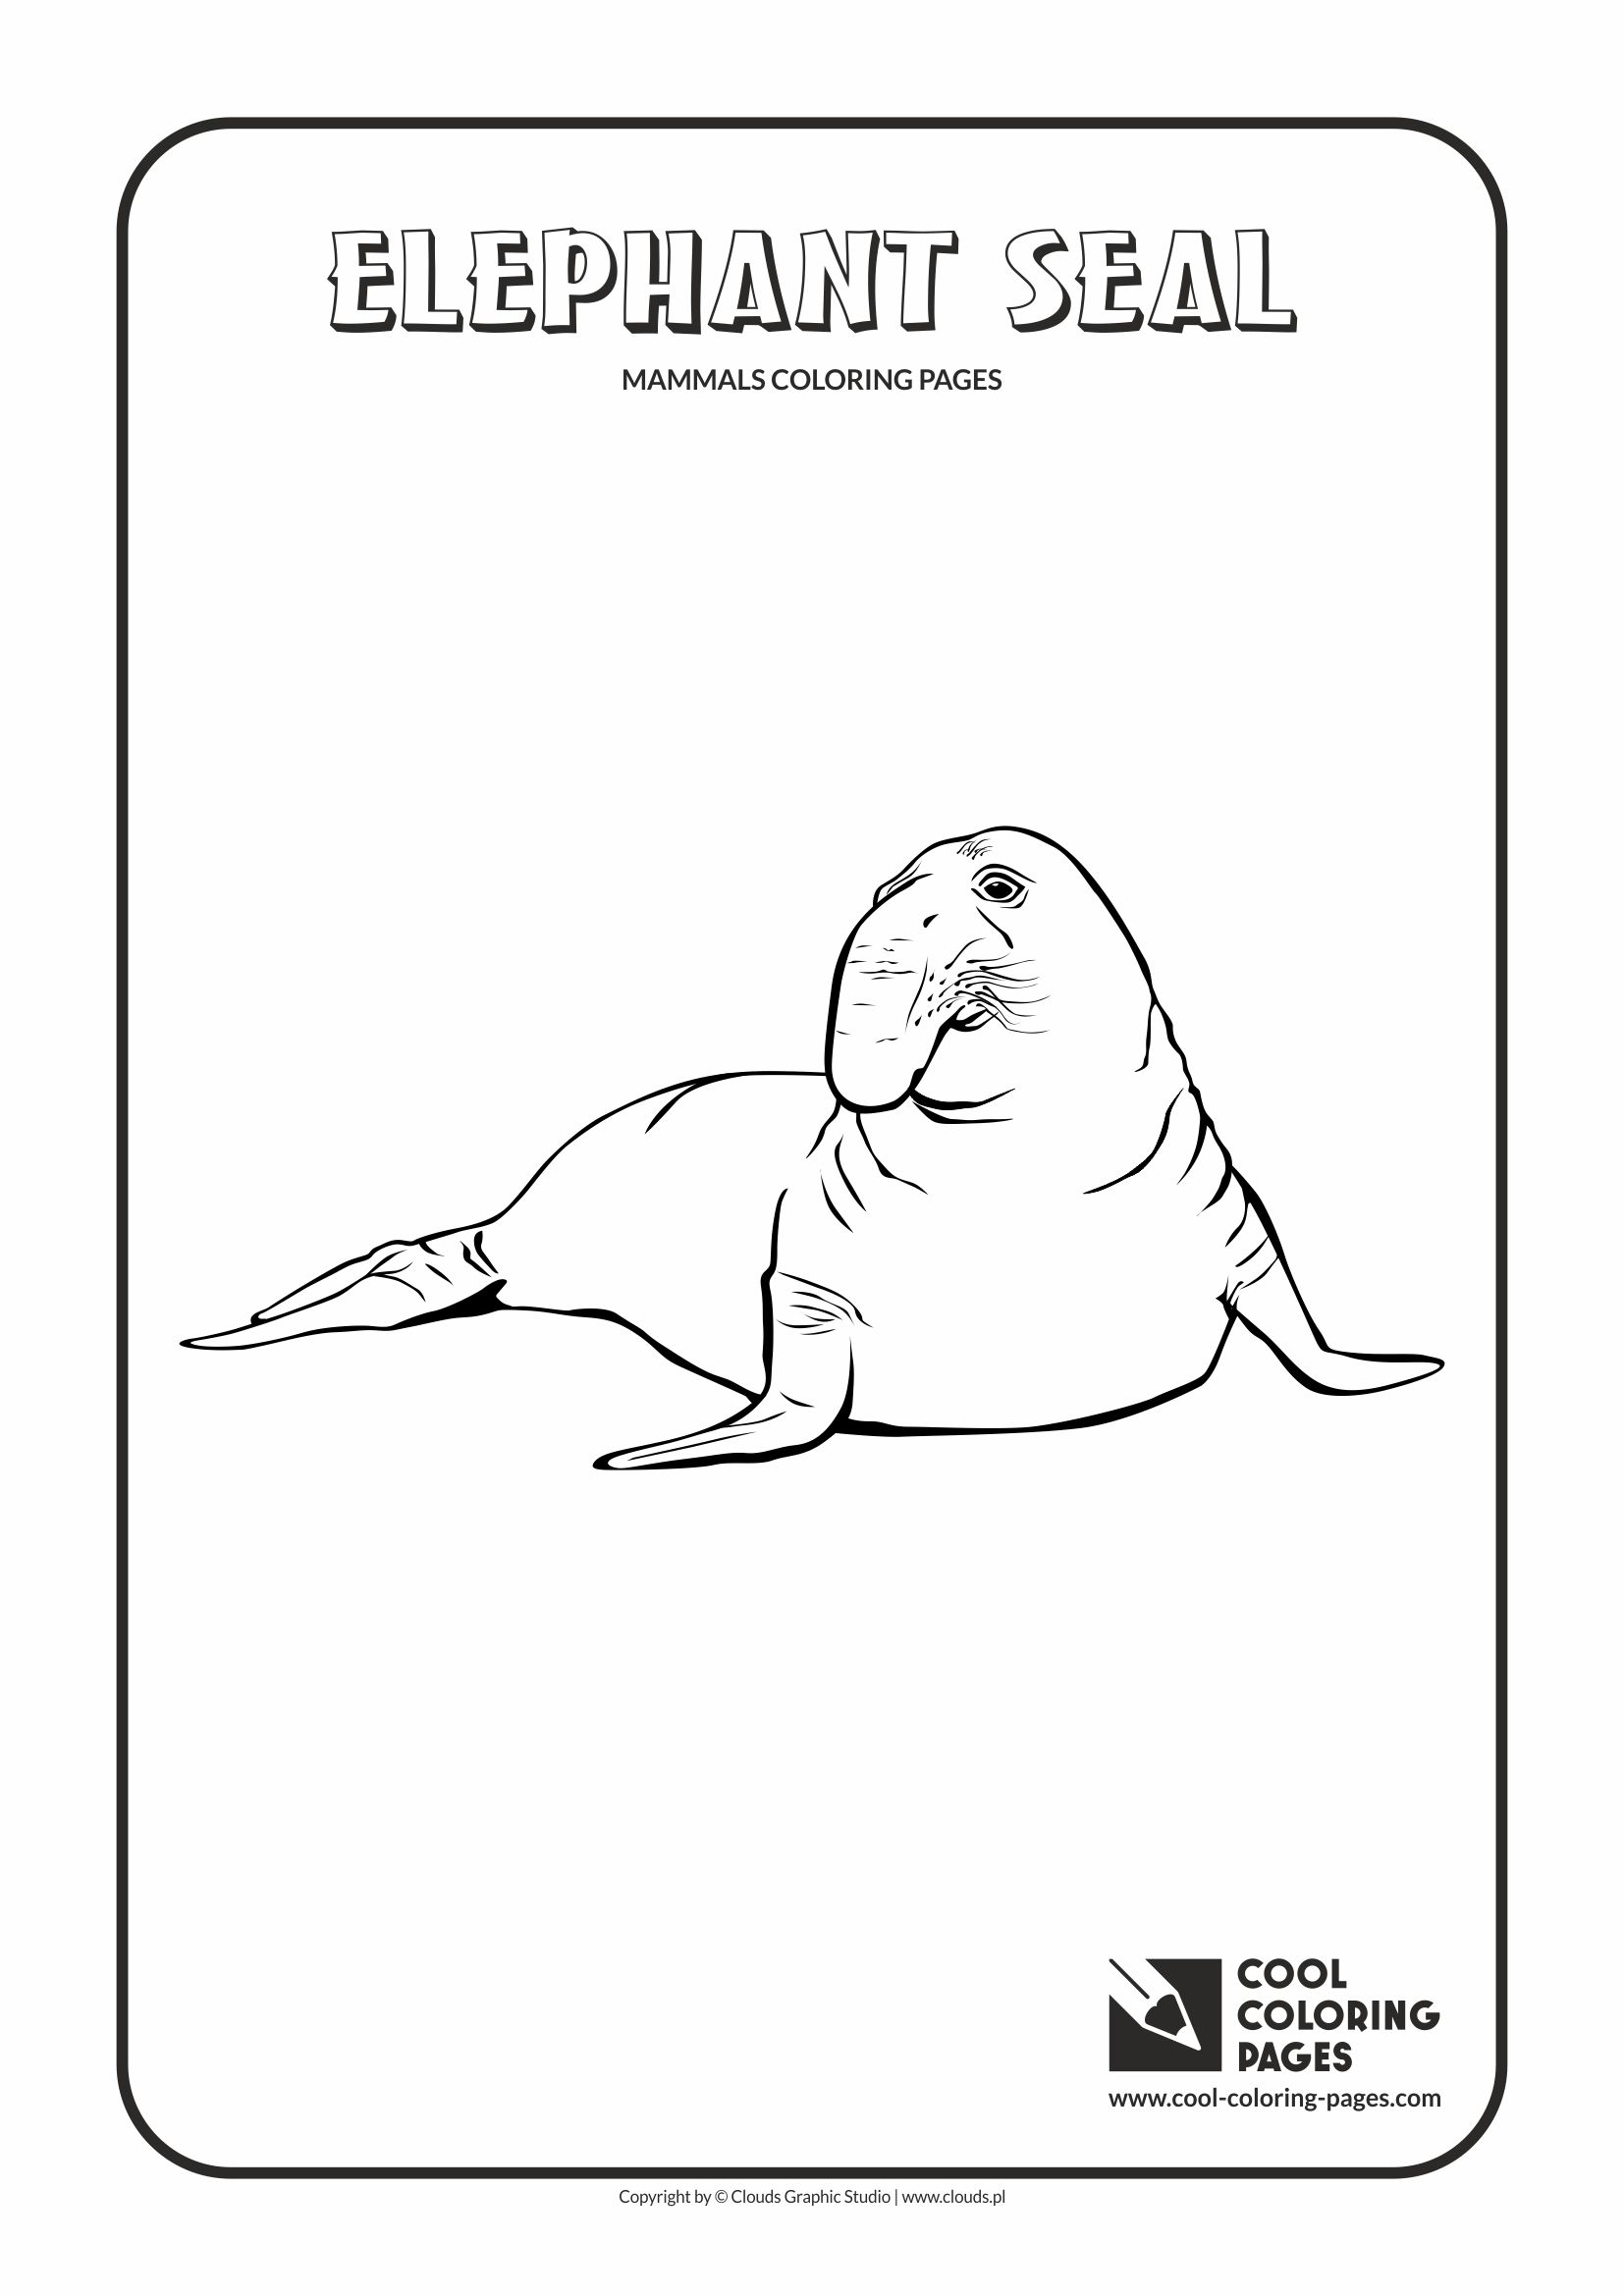 Cool Coloring Pages - Animals / Elephant seal / Coloring page with elephant seal